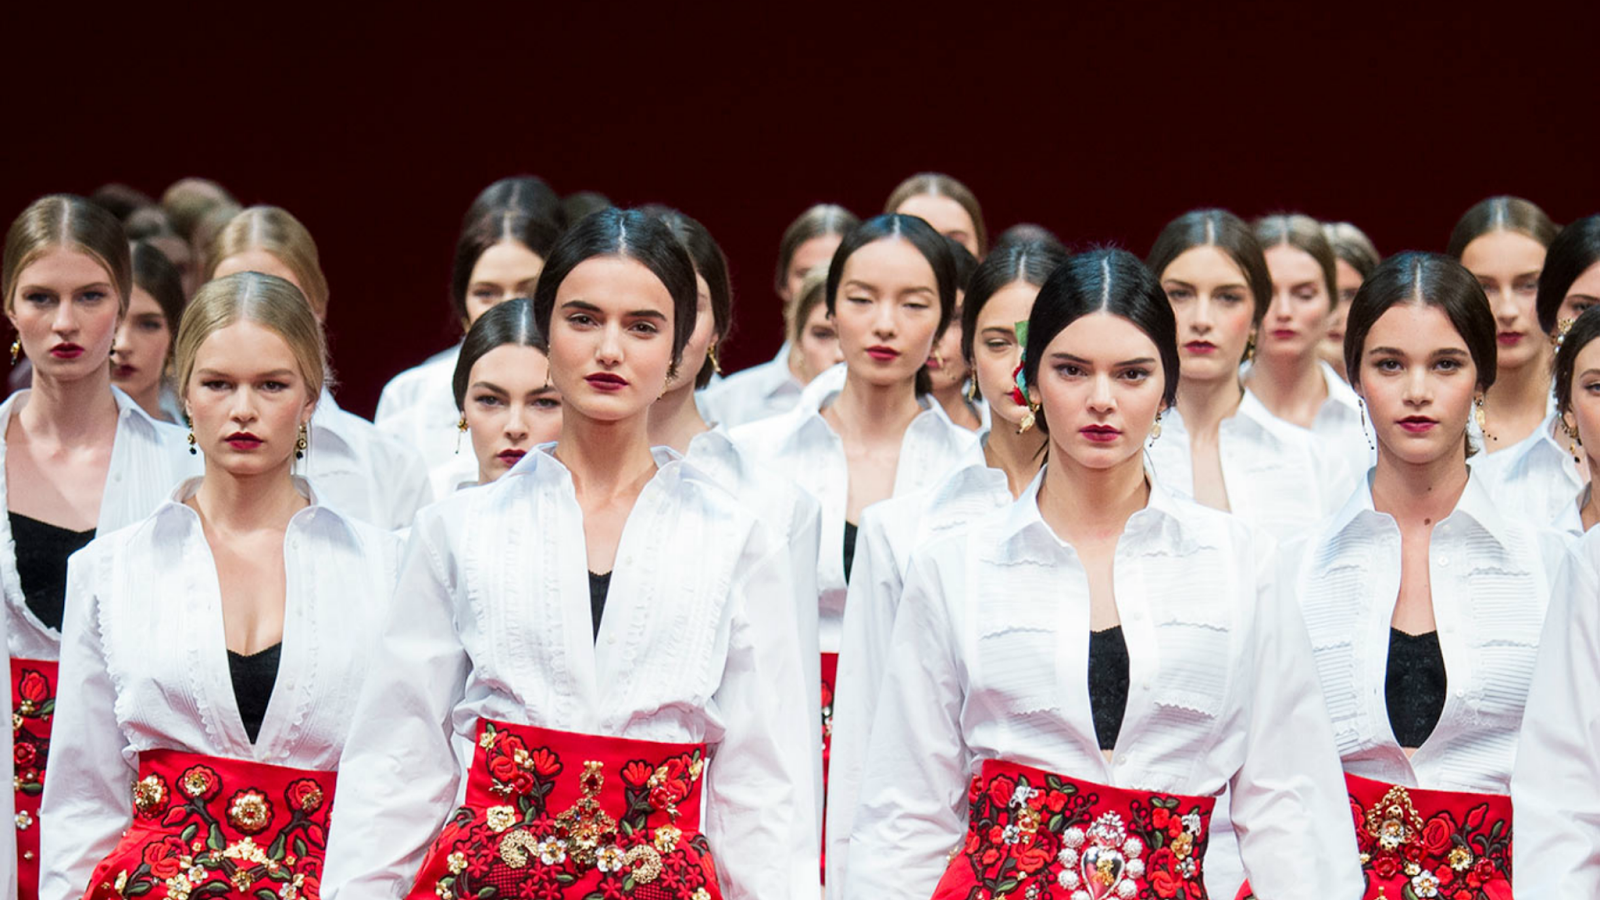 dolce and gabbana, milan fashion week, fashion, fashion week, kendall jenner, models, runway, desfile, moda,